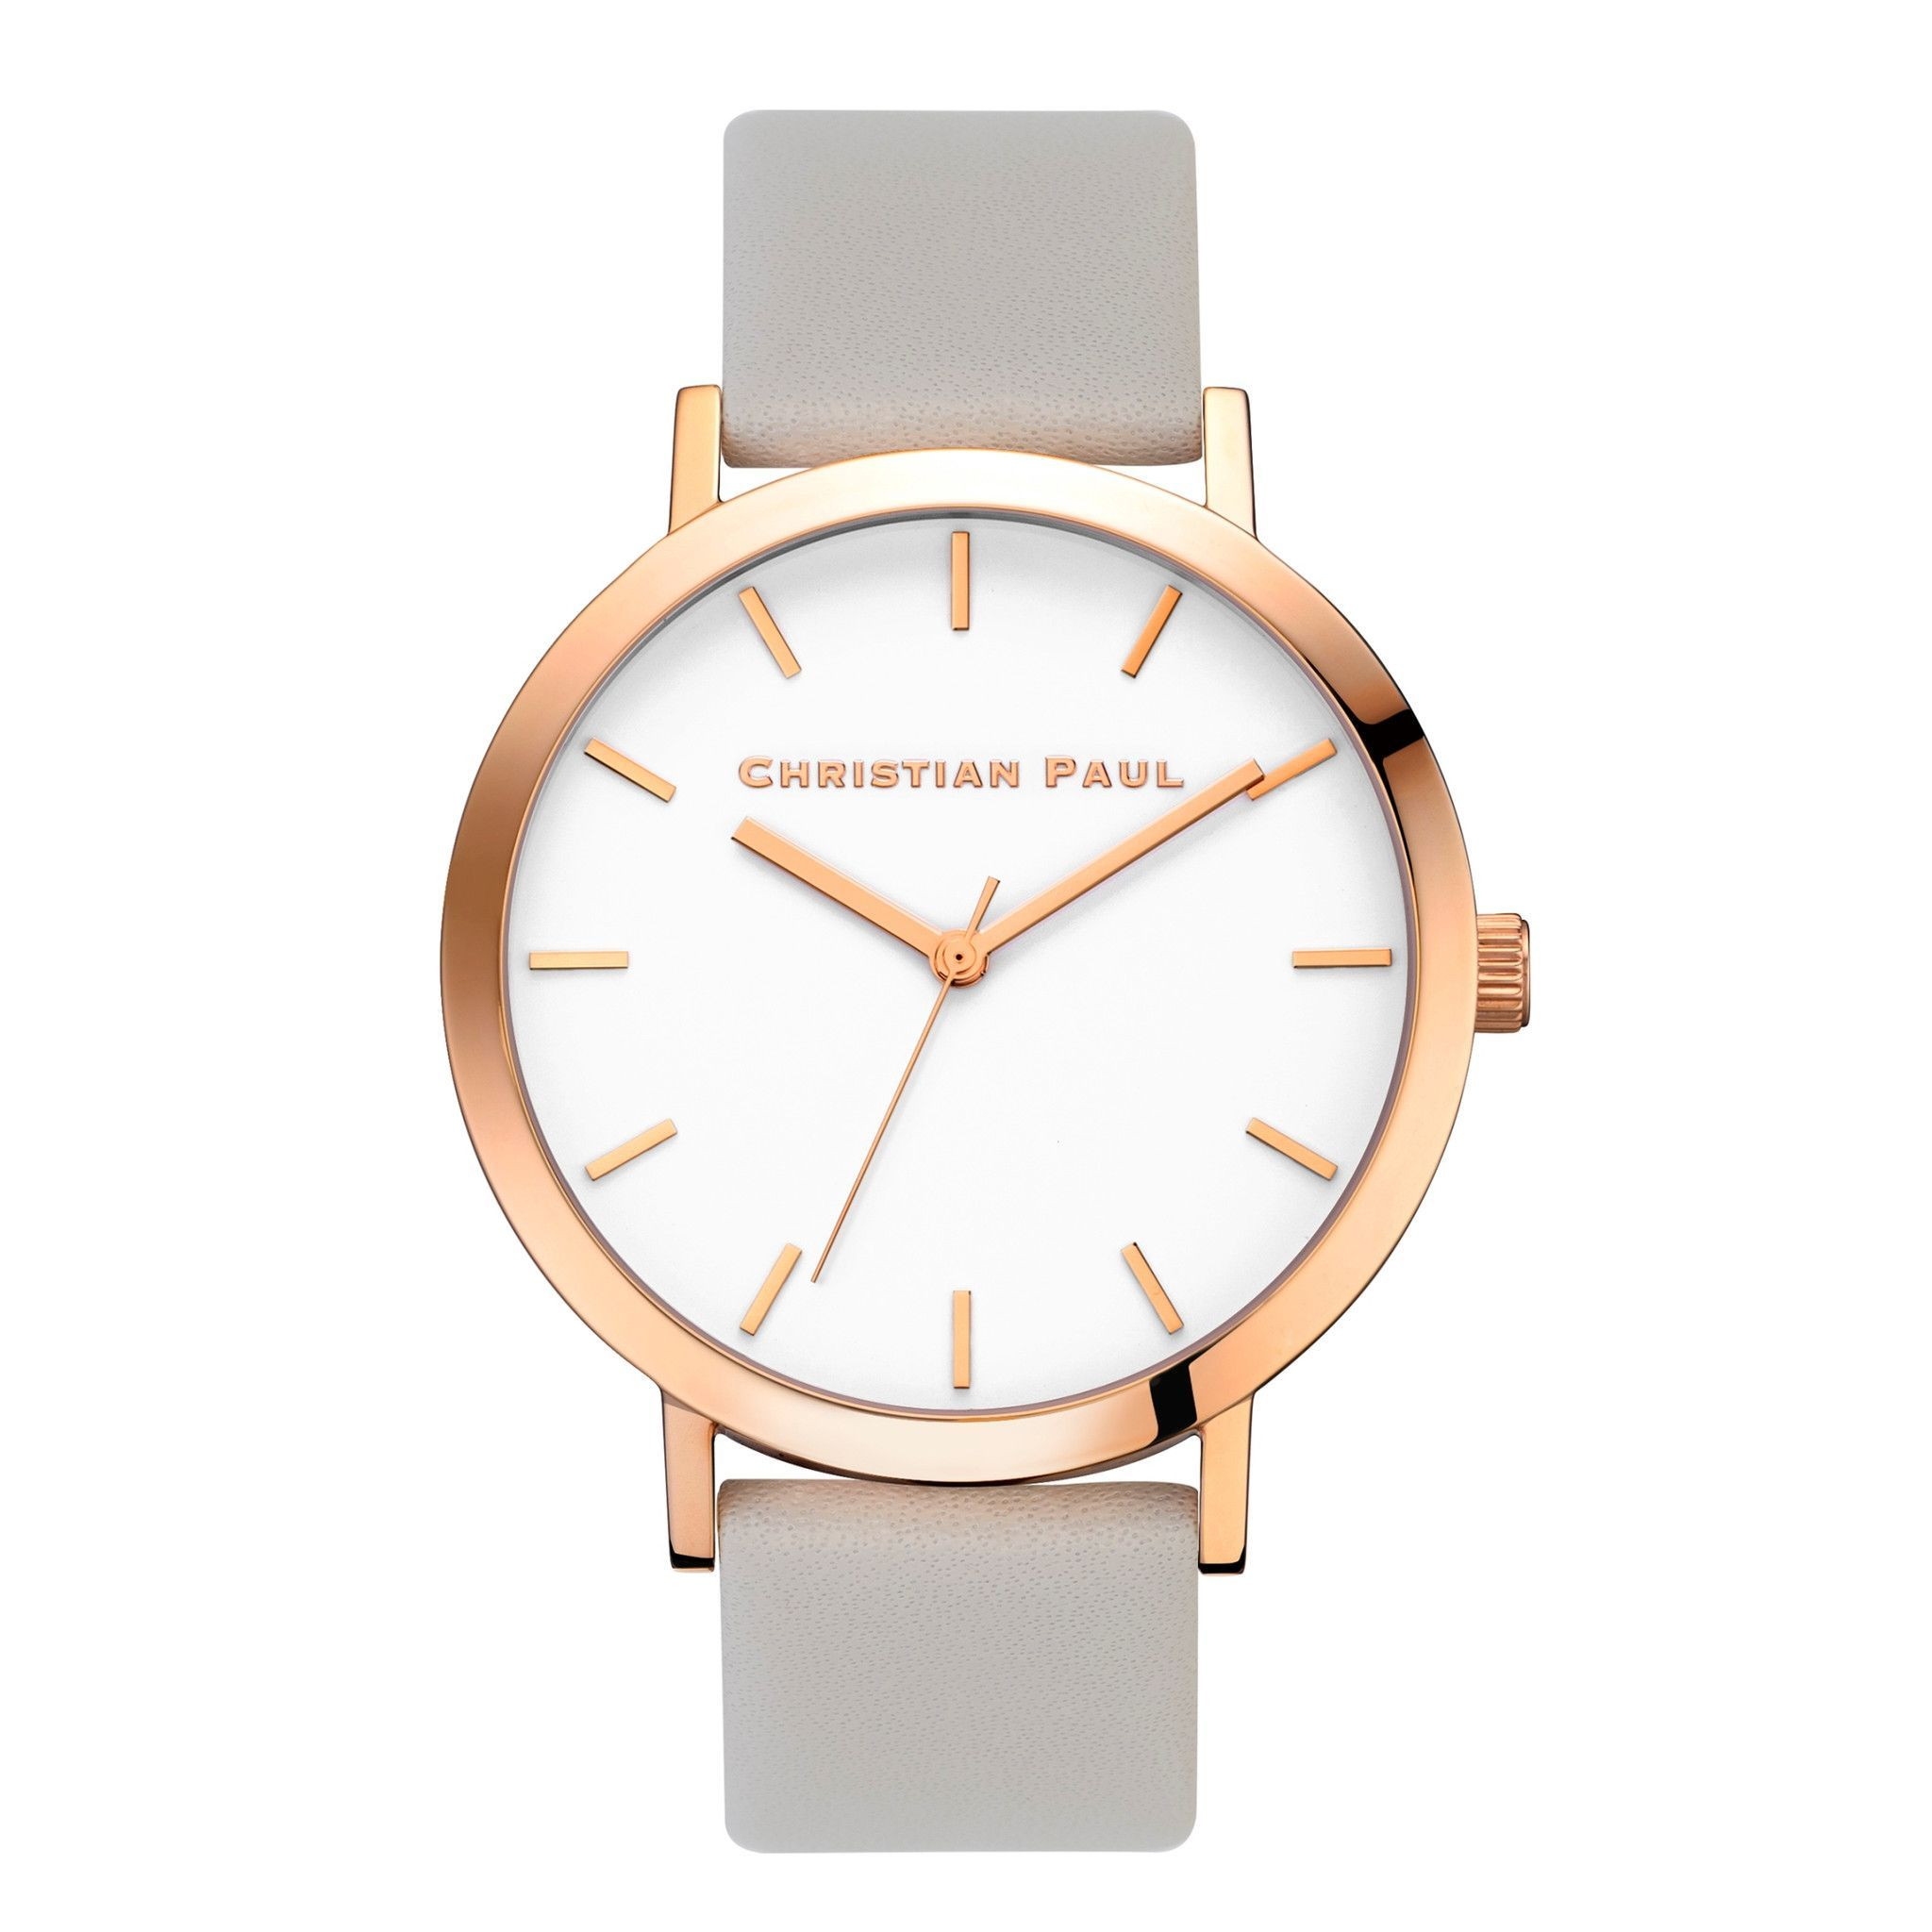 meets timepiece thefifthwatches andicsinger watches pin her com peach classic gold snapping fifth design minimal essentials rose the